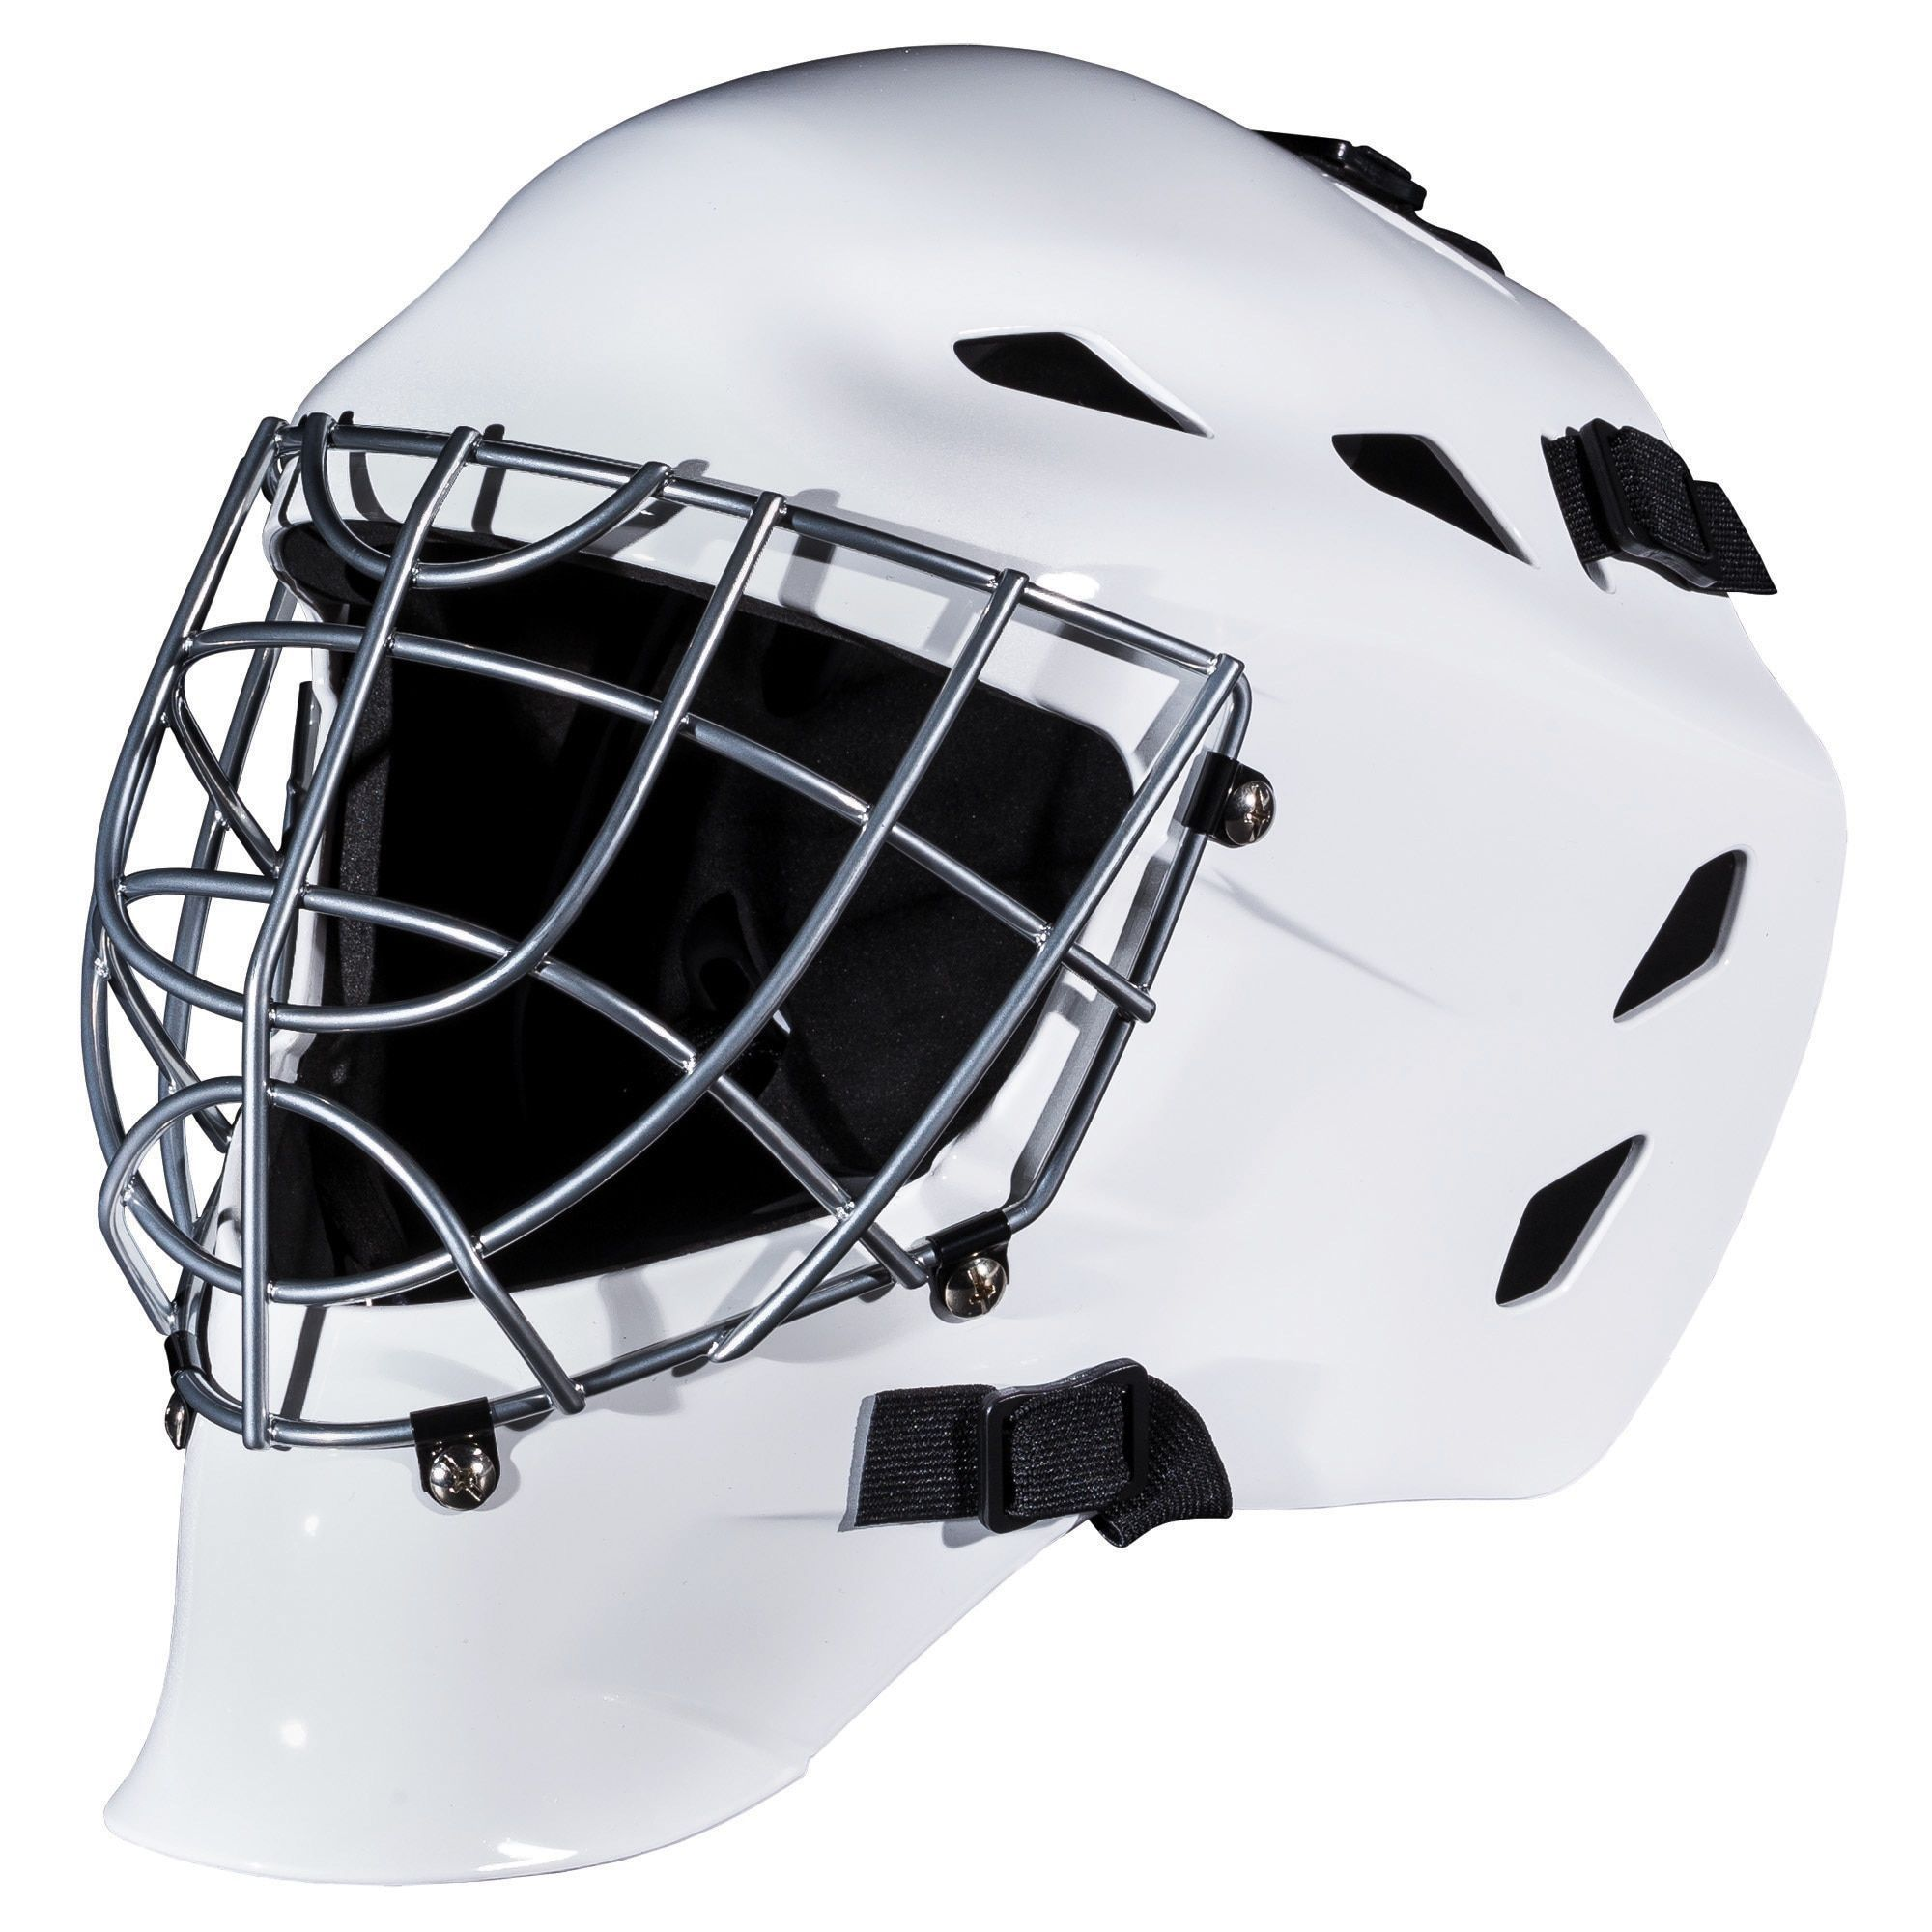 Online Shopping Bedding Furniture Electronics Jewelry Clothing More Hockey Goalie Equipment Goalie Mask Street Hockey